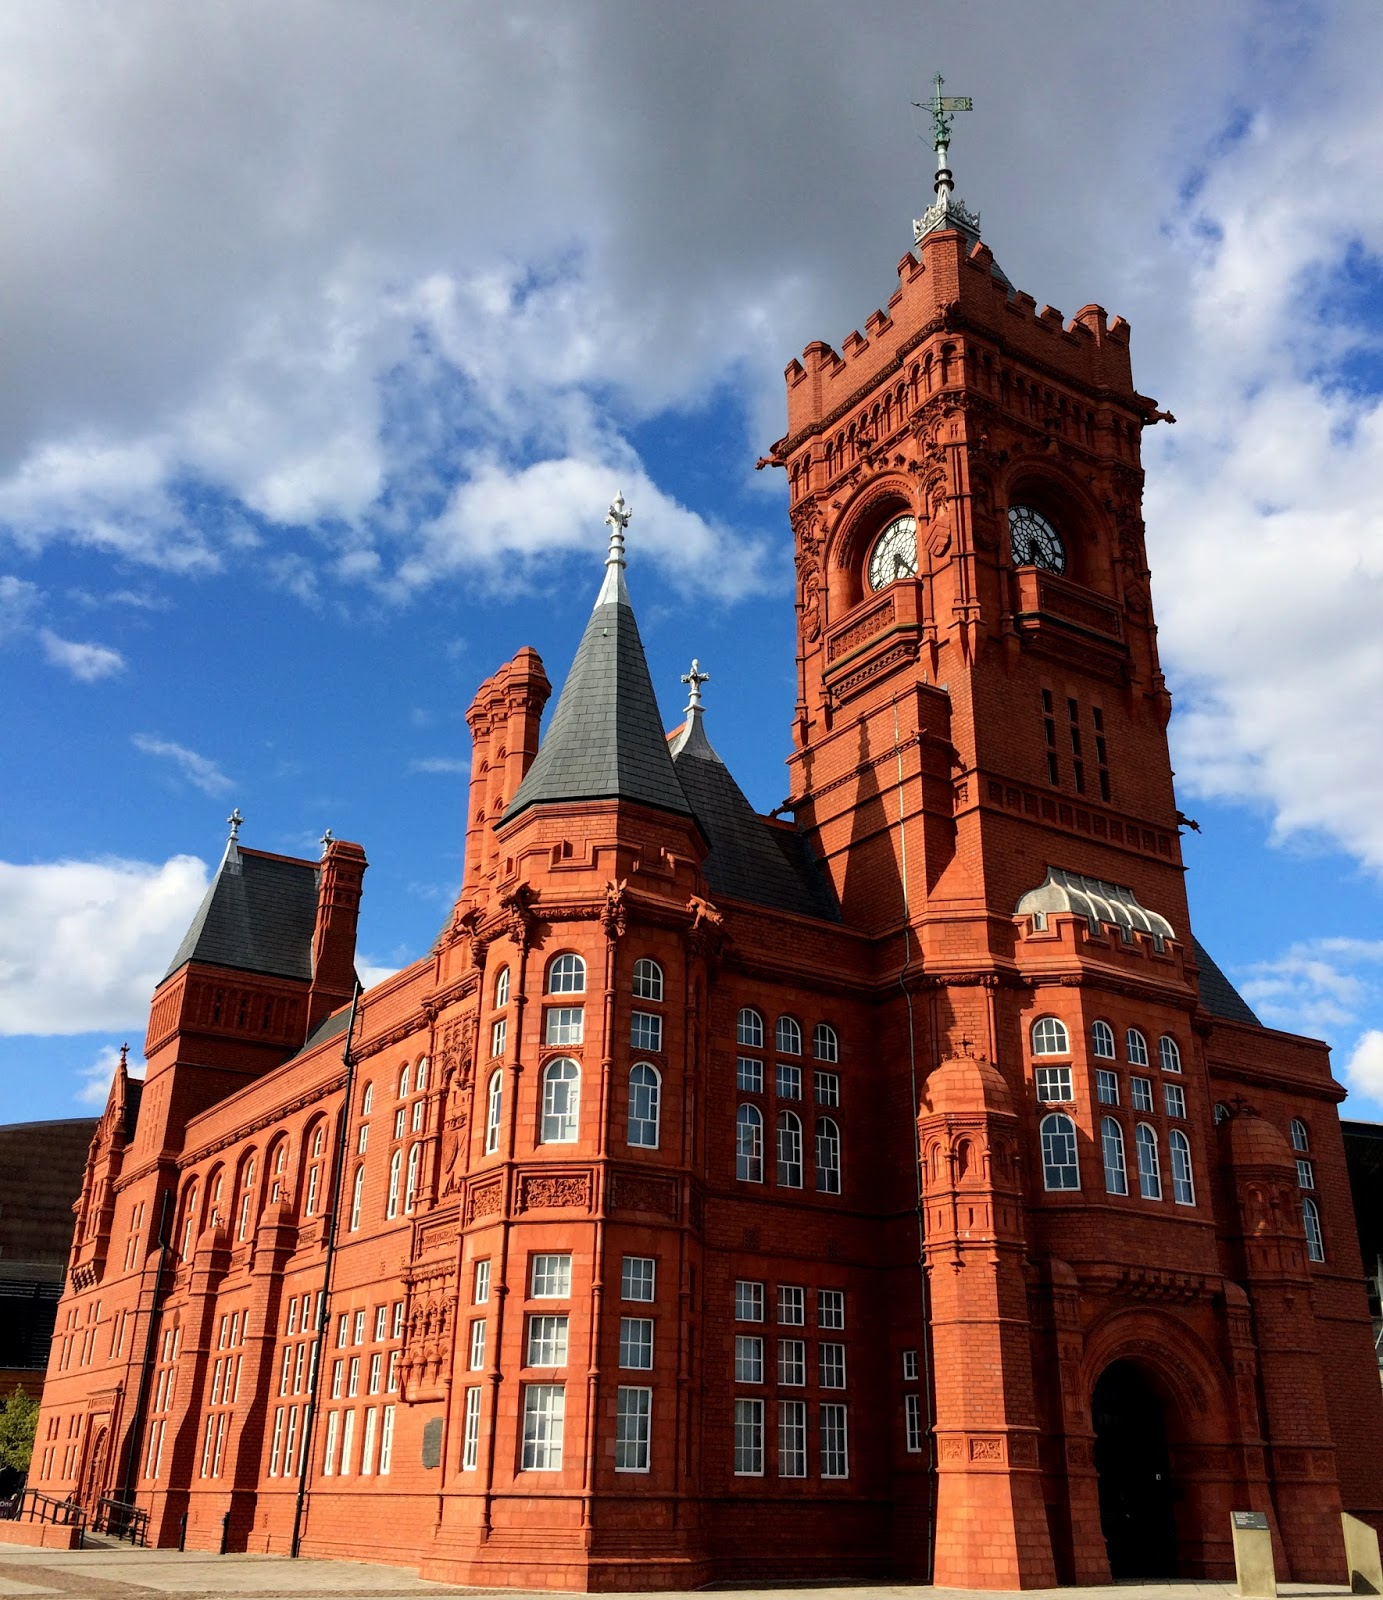 cozy birdhouse | pierhead building in cardiff